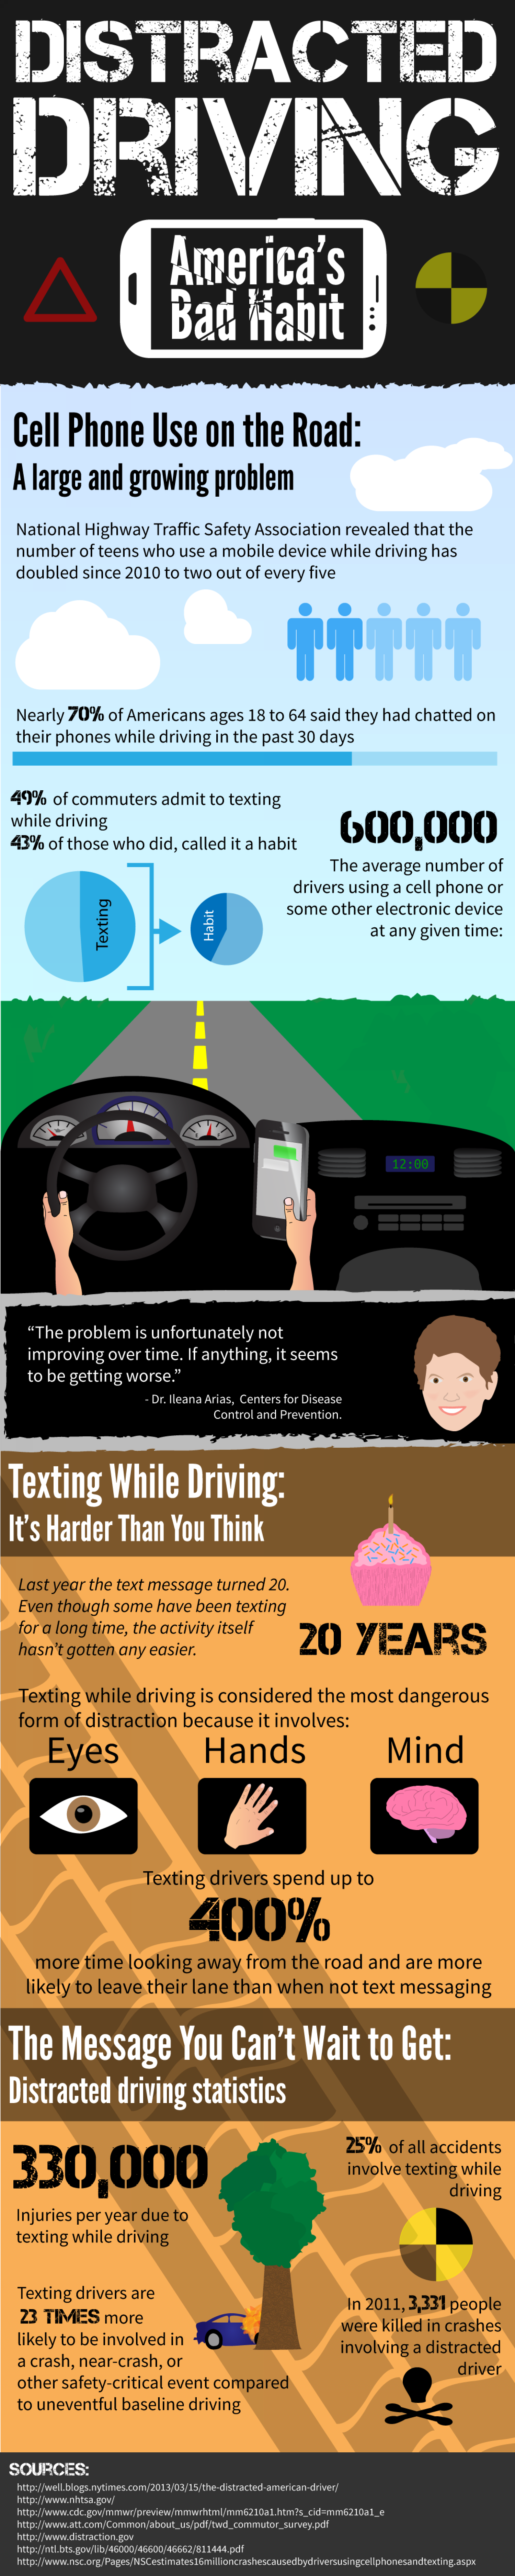 Distracted Driving - America's Bad Habit Infographic